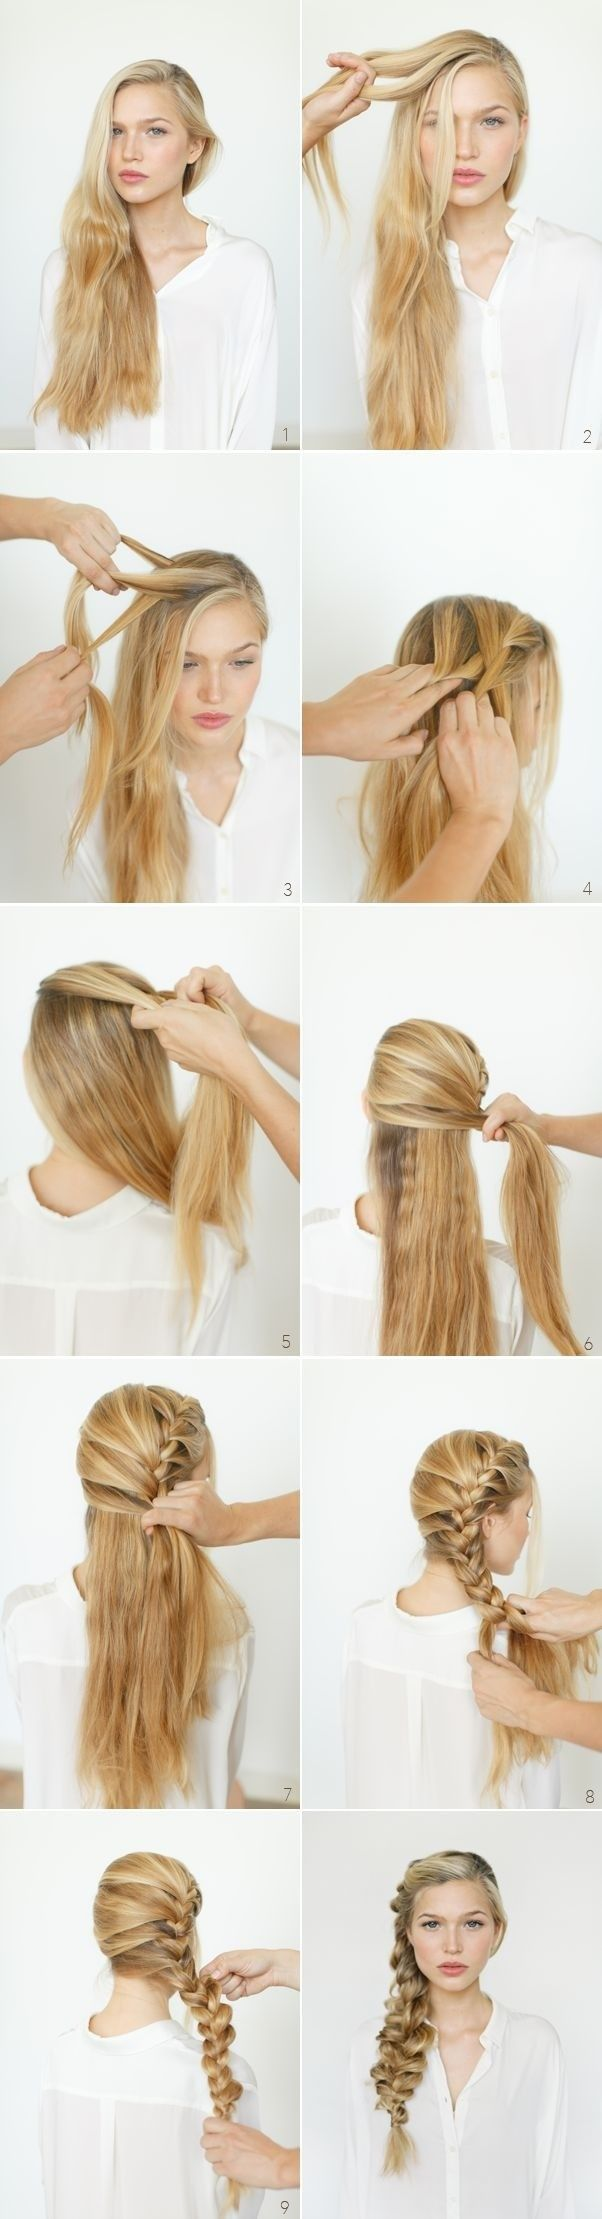 8 Cute Braided Hairstyles for Girls: Long Hair Ideas 2014 - 2015: